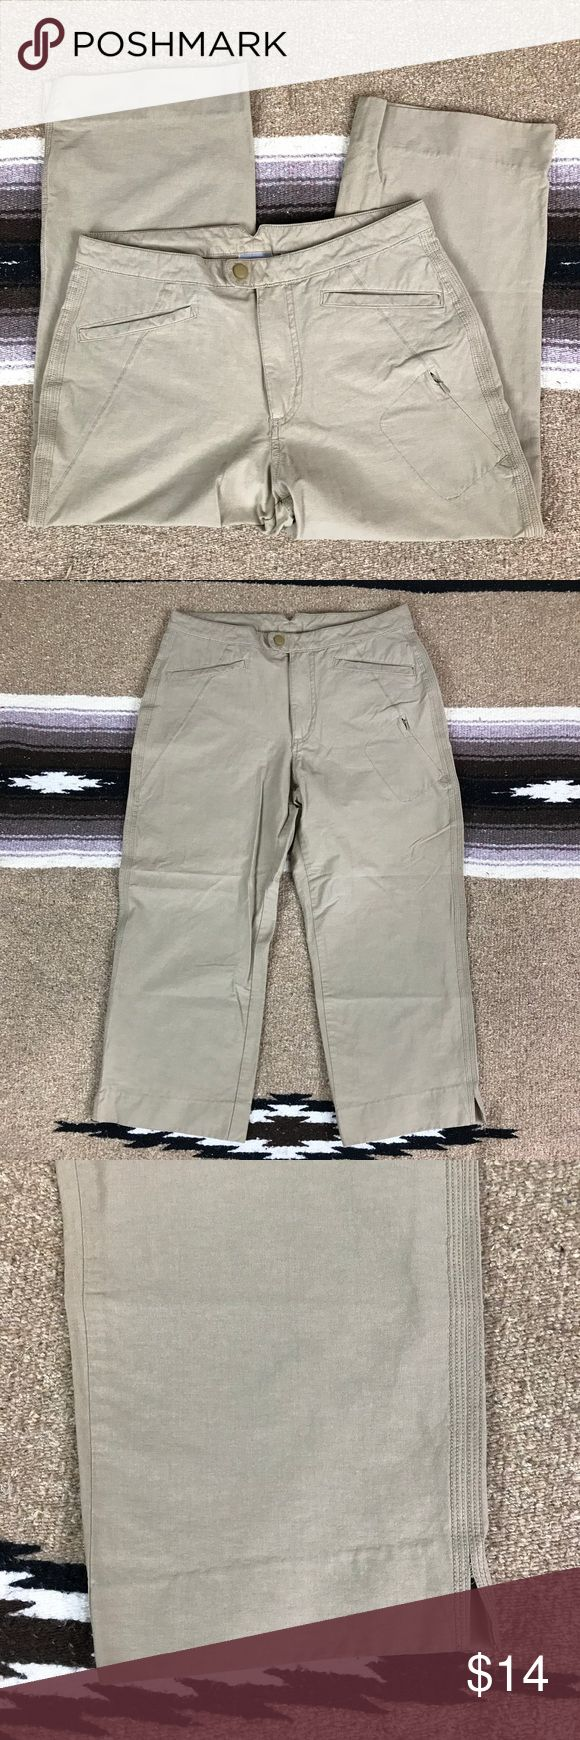 "Columbia Tan Hiking Outdoor Capri Pants, Size 8 - Columbia Sportswear Company - Women's size 8 - In good condition! - Cotton/polyester - Waist: 30"" - Rise: 10"" - Inseam: 20.5"" - Length: 30.5"" Columbia Pants Capris"